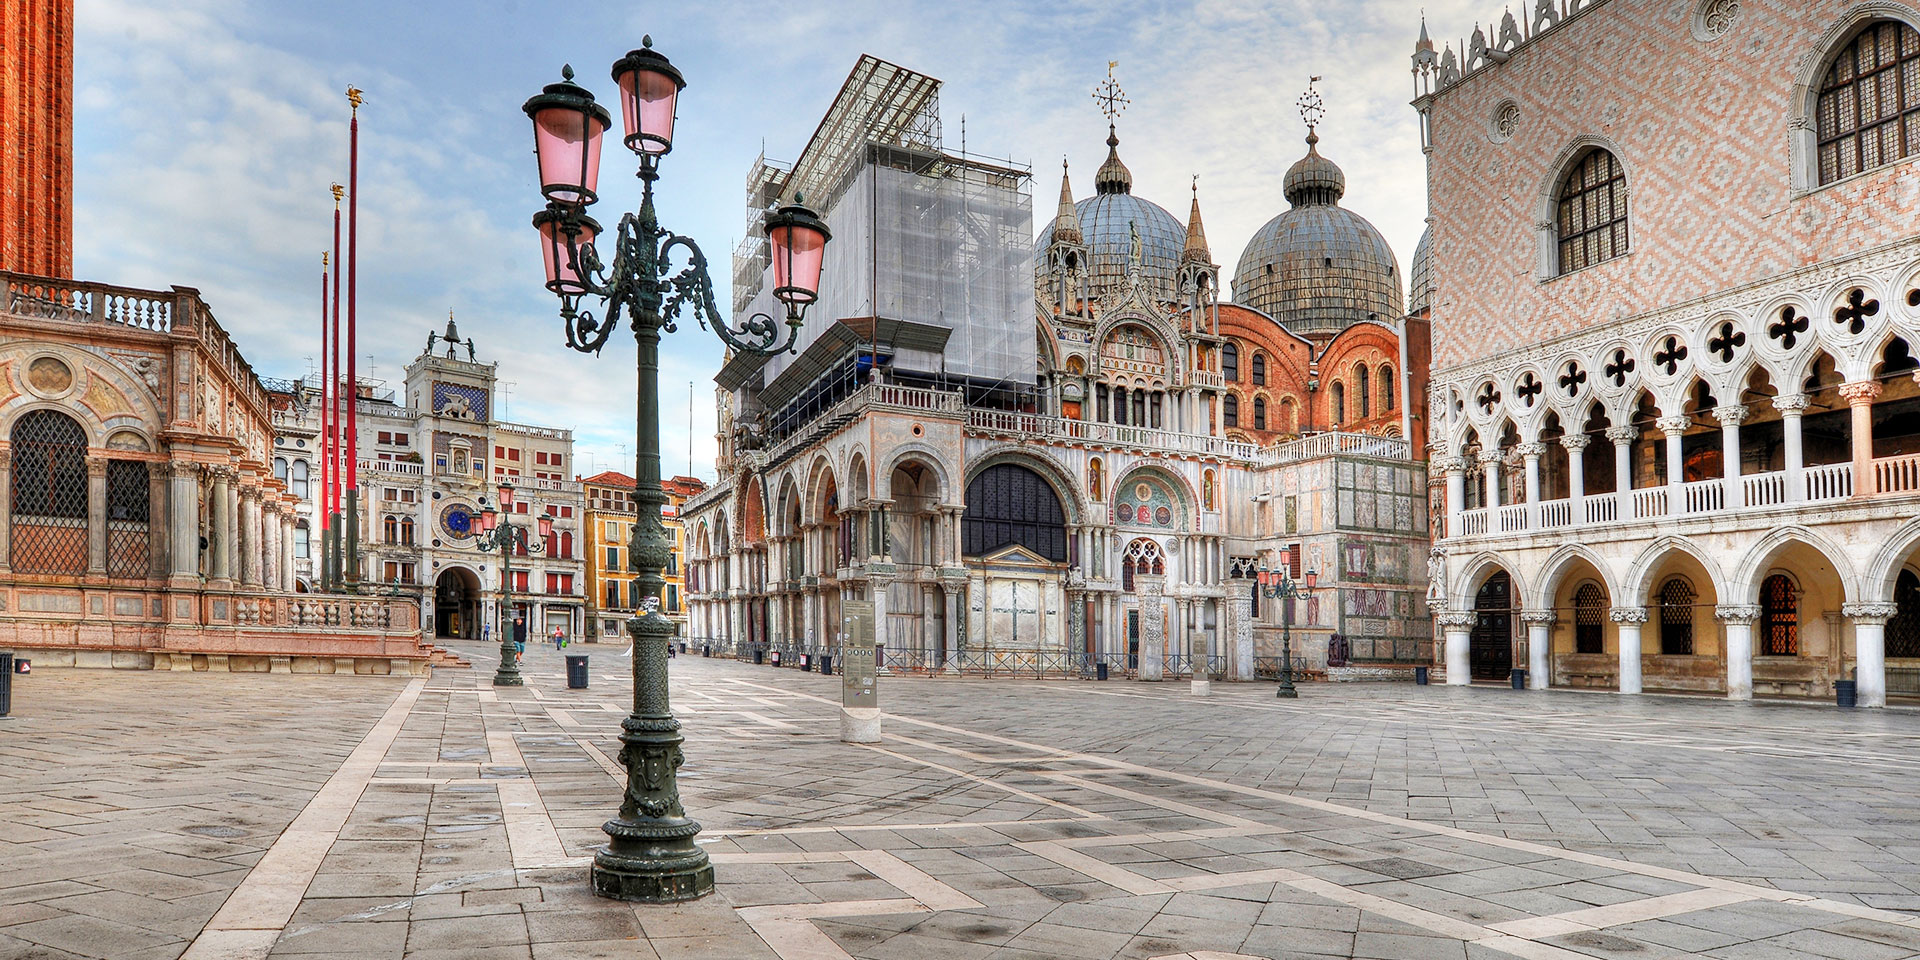 Make like Bond and dash through the Piazza San Marco. (Photo: Getty Images)